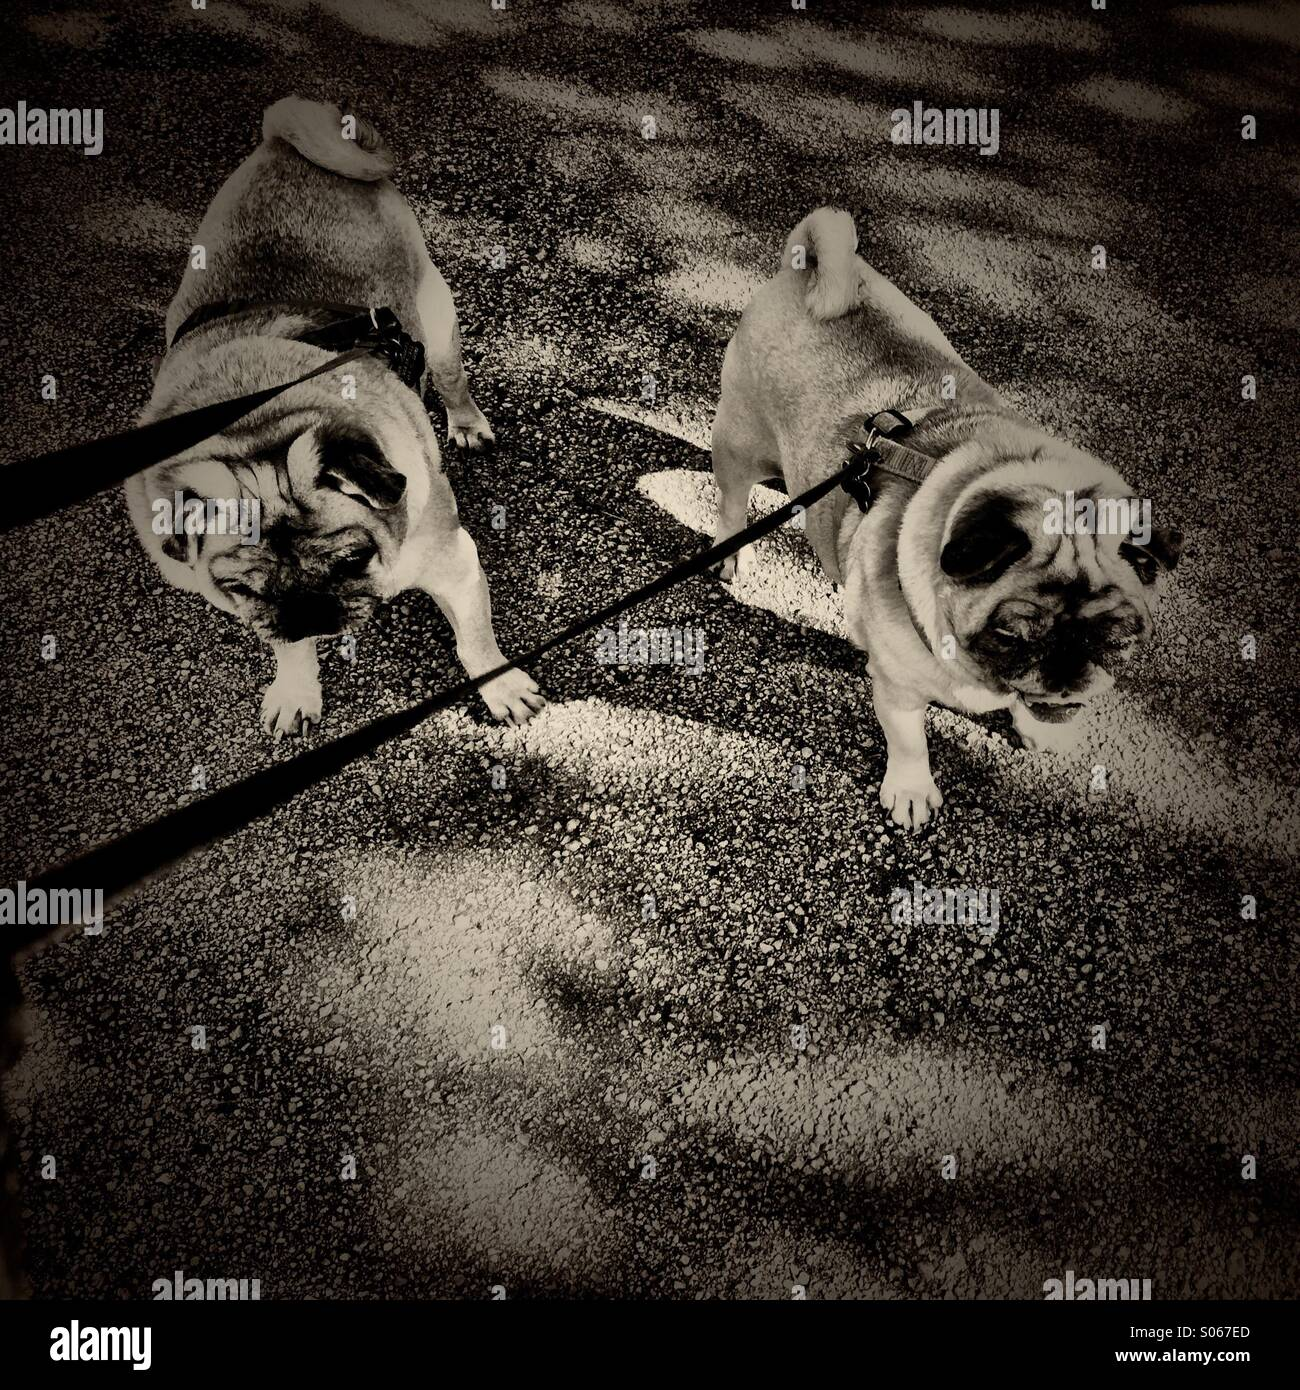 Two pugs on leashes. - Stock Image